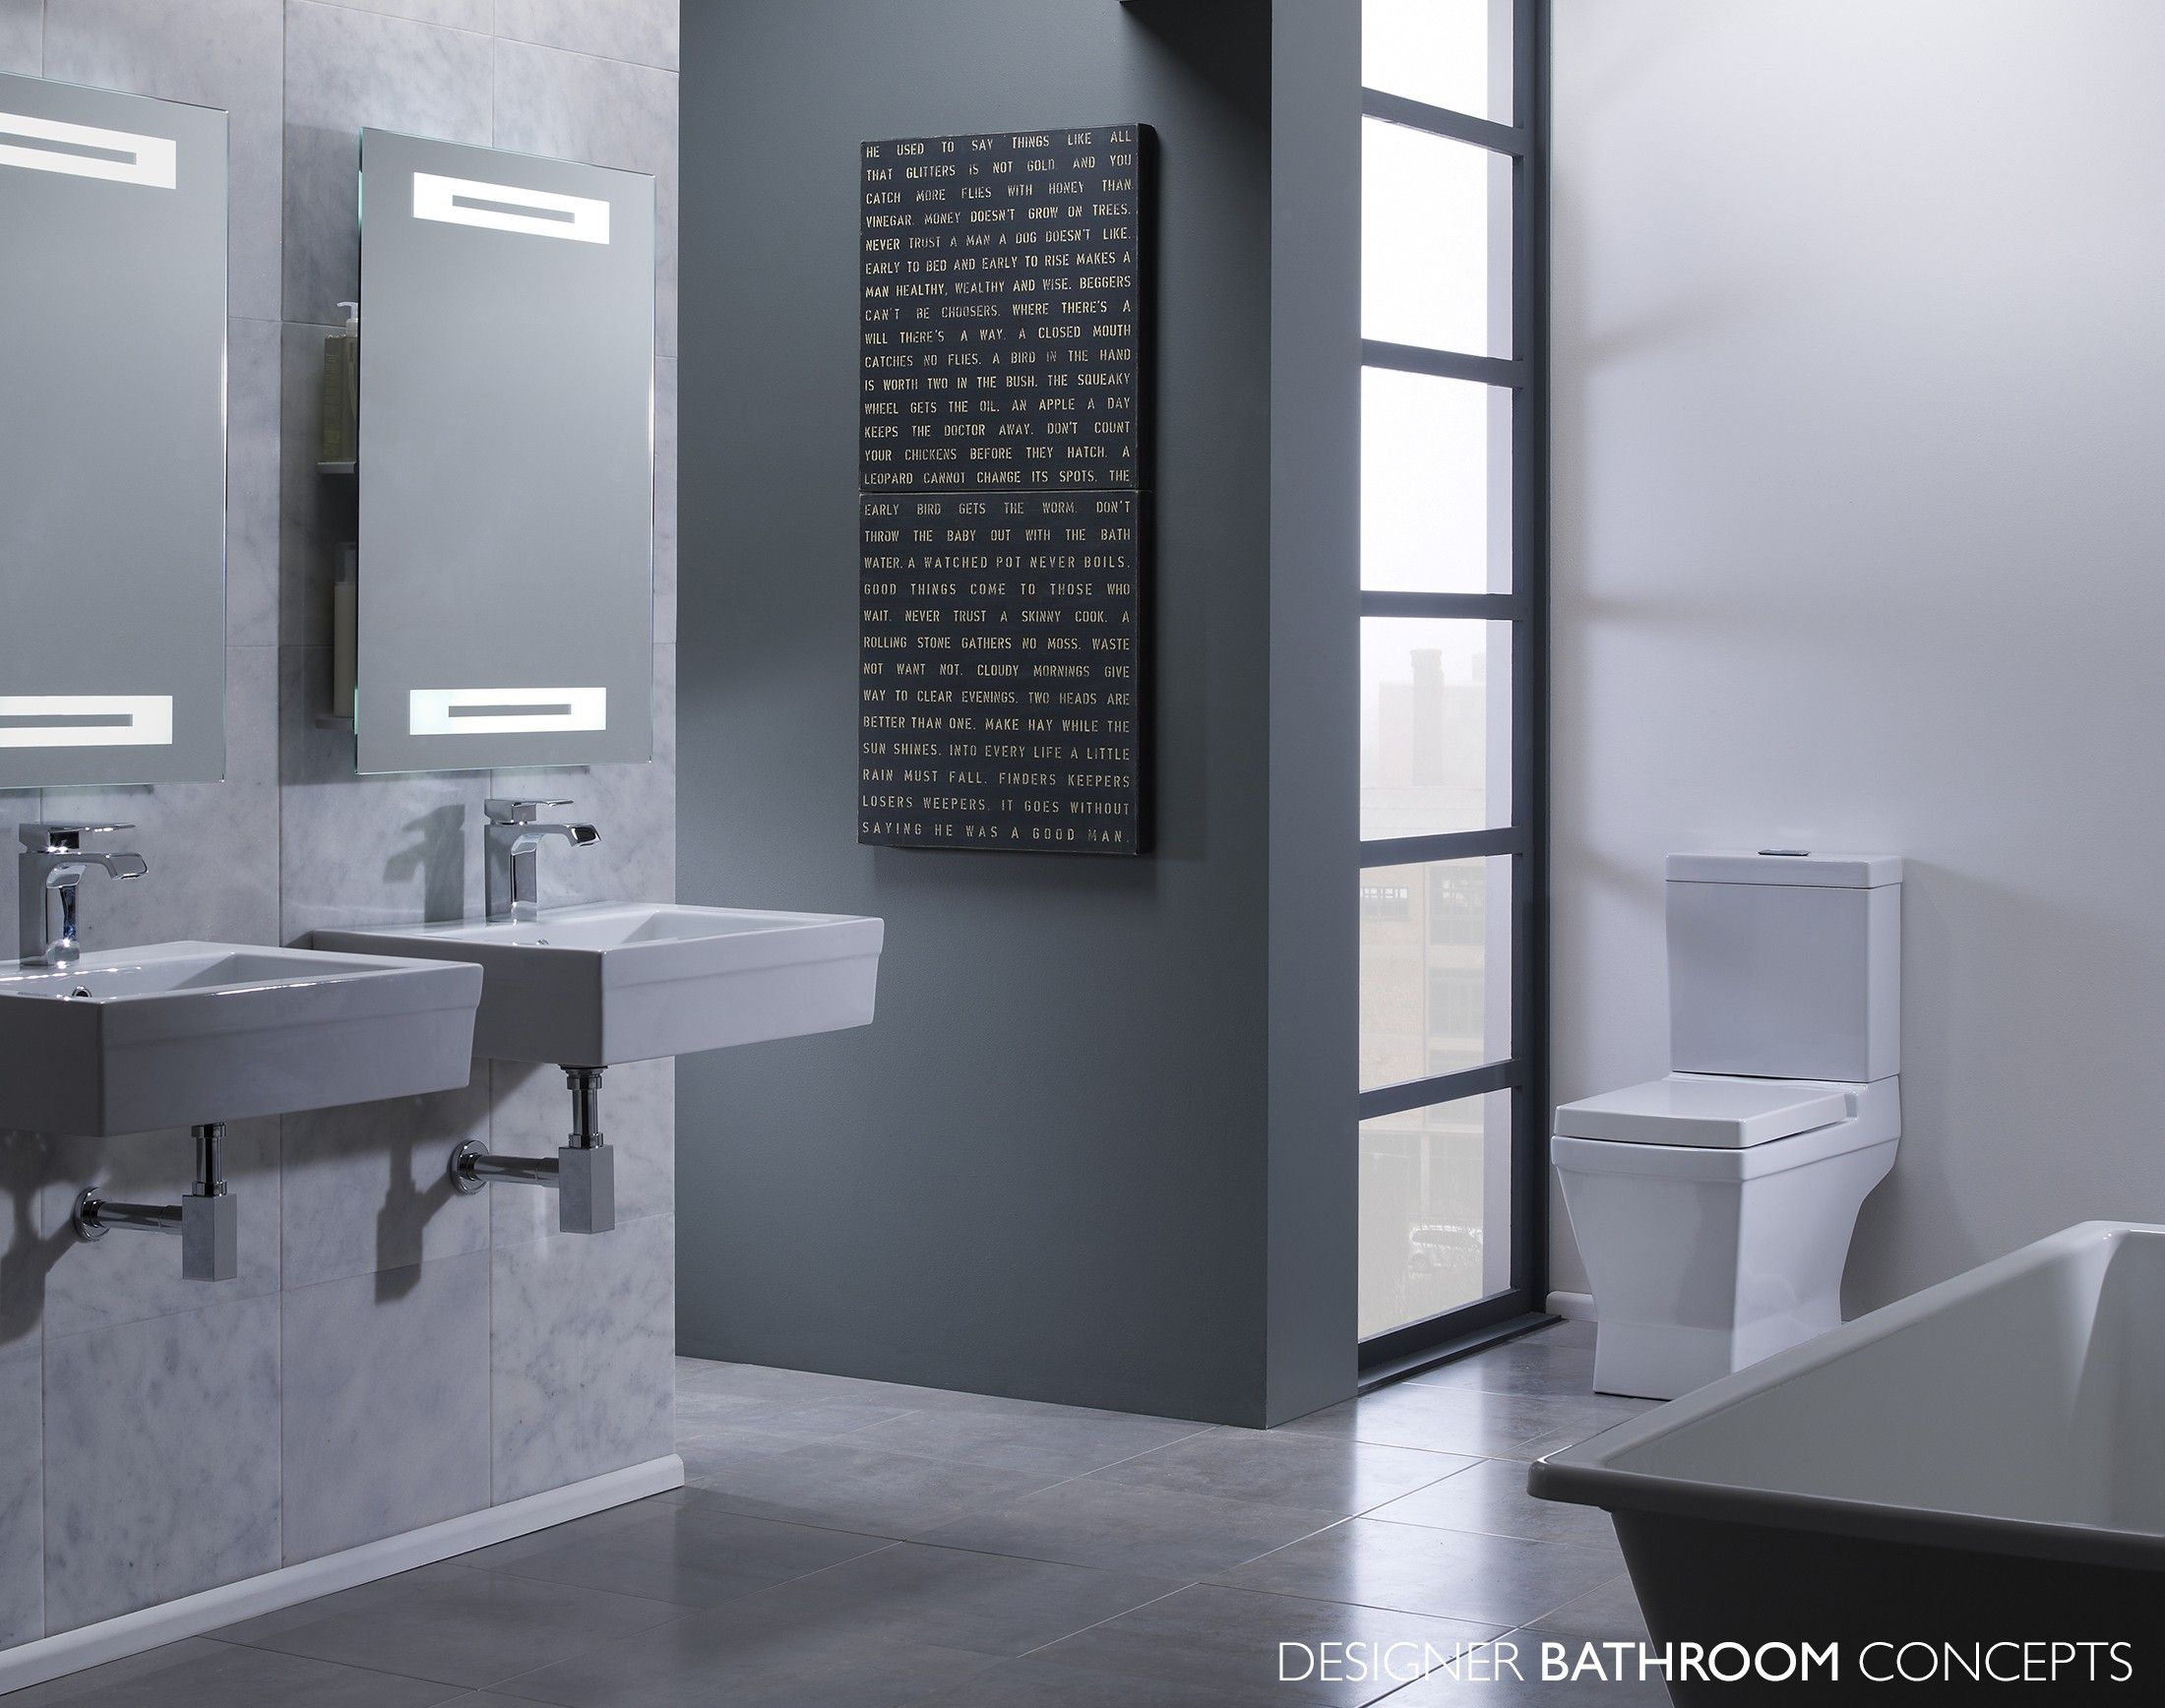 Finesse Designer Bathroom Suites From DesignerBathroomConceptscom - Designer bathroom suites